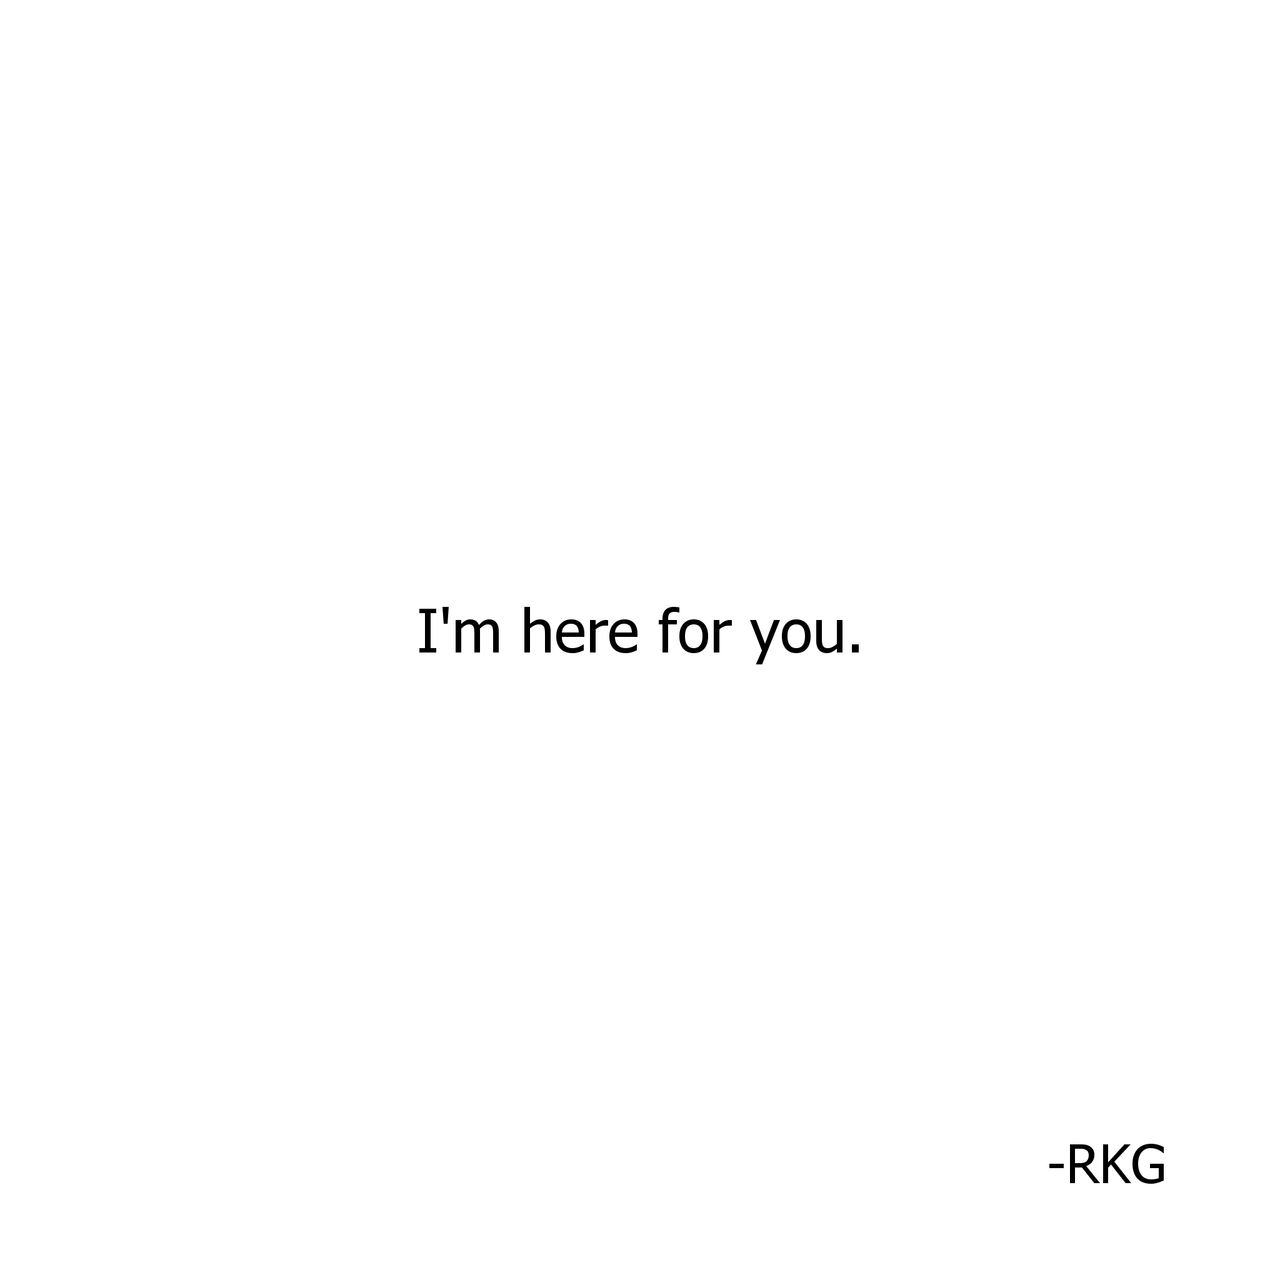 I\'m here for you, no matter what, at 4.00 A.M or 2.00 P.M ...